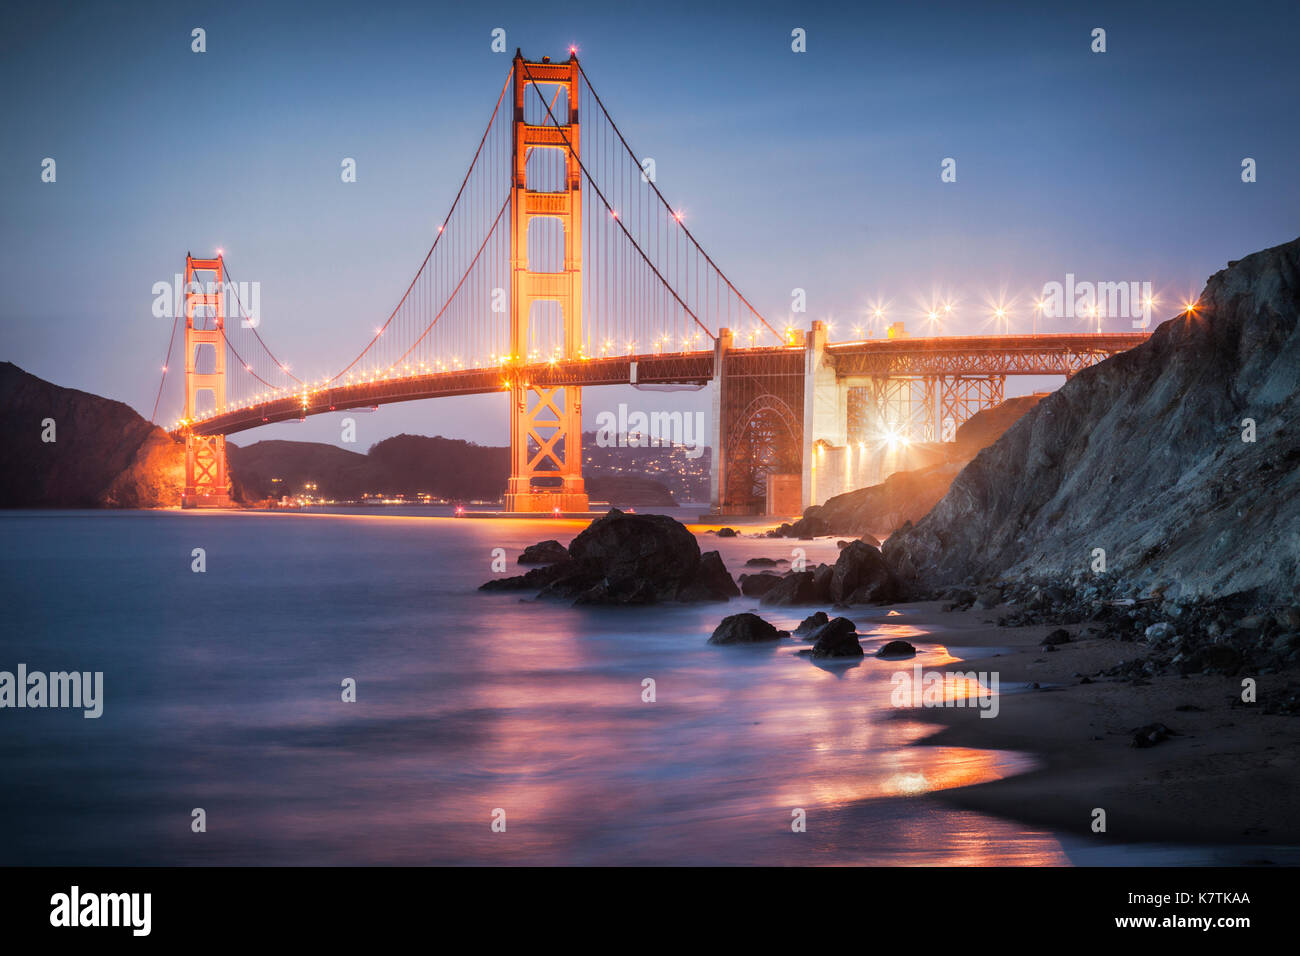 Die Golden Gate Bridge, San Francisco, beleuchtete nach Sonnenuntergang. Stockbild